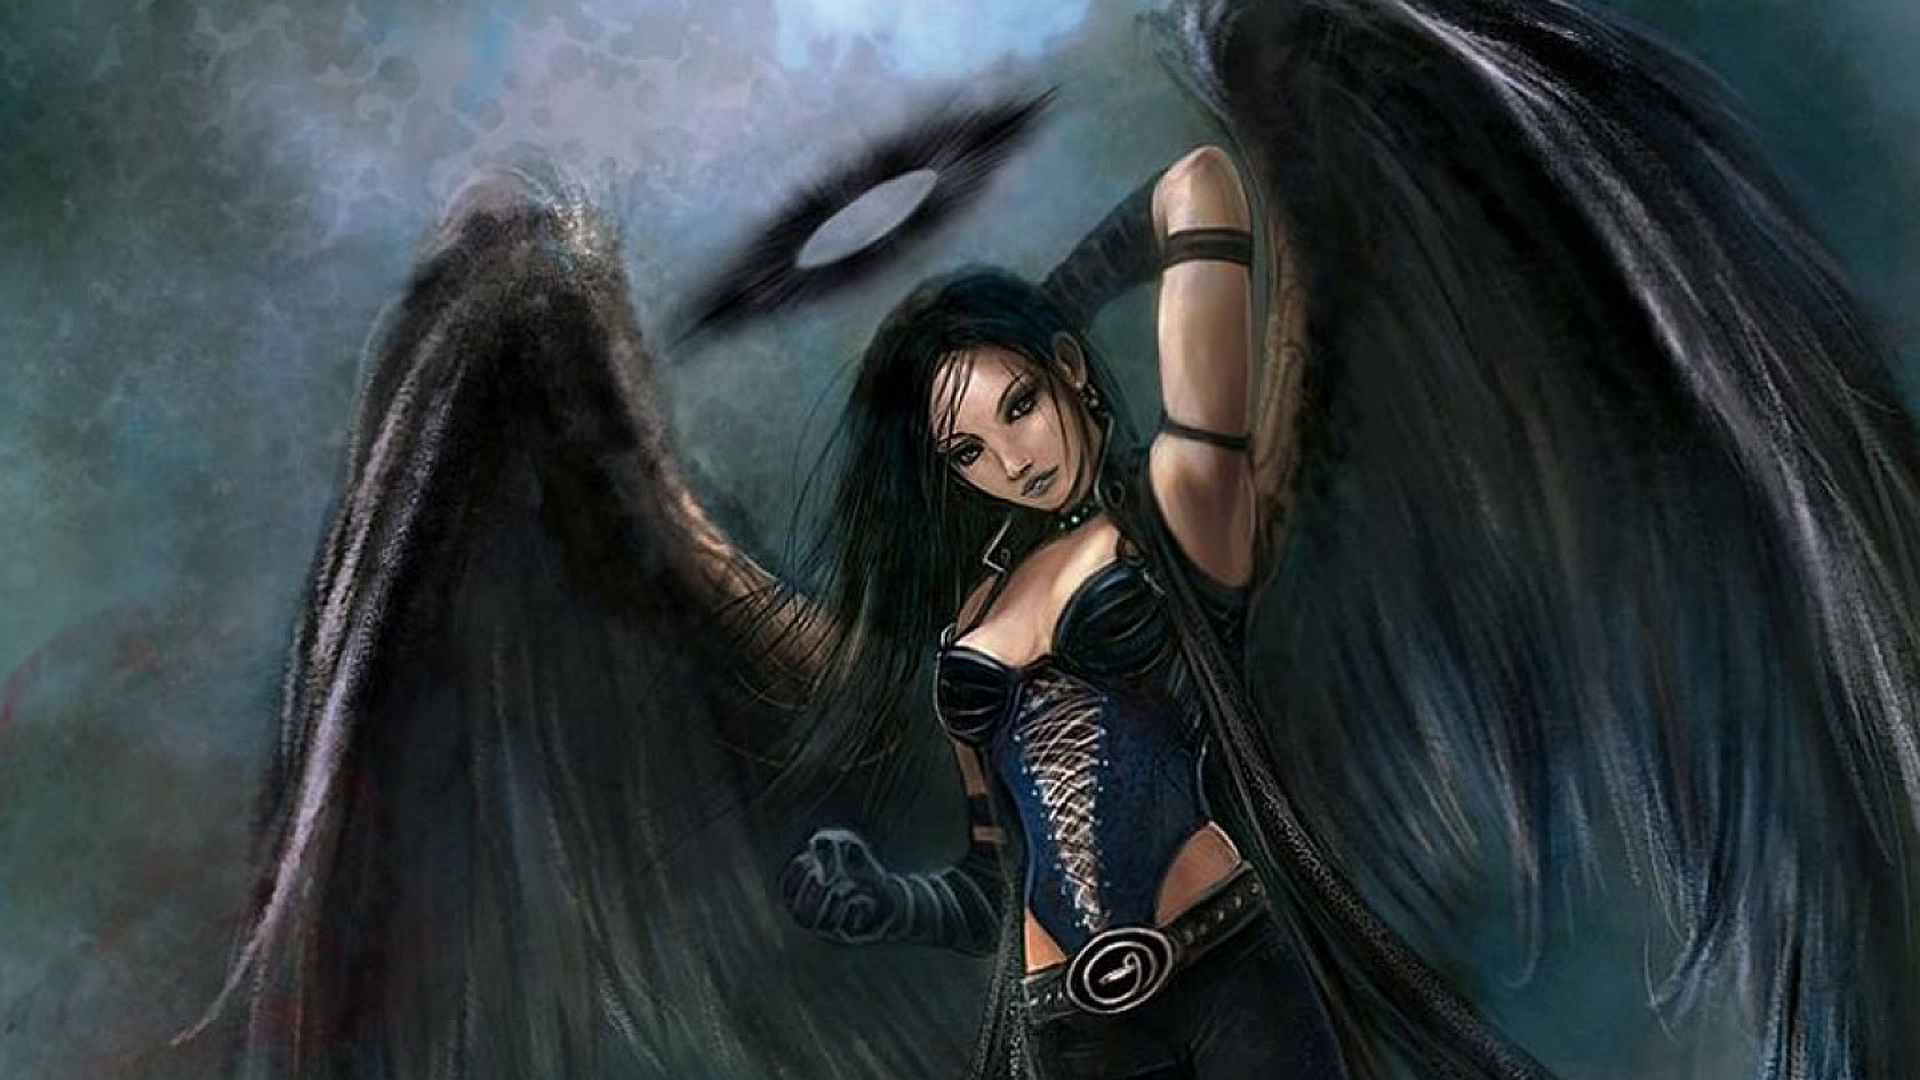 Anime Dark Angel Girl 10 Widescreen Wallpaper